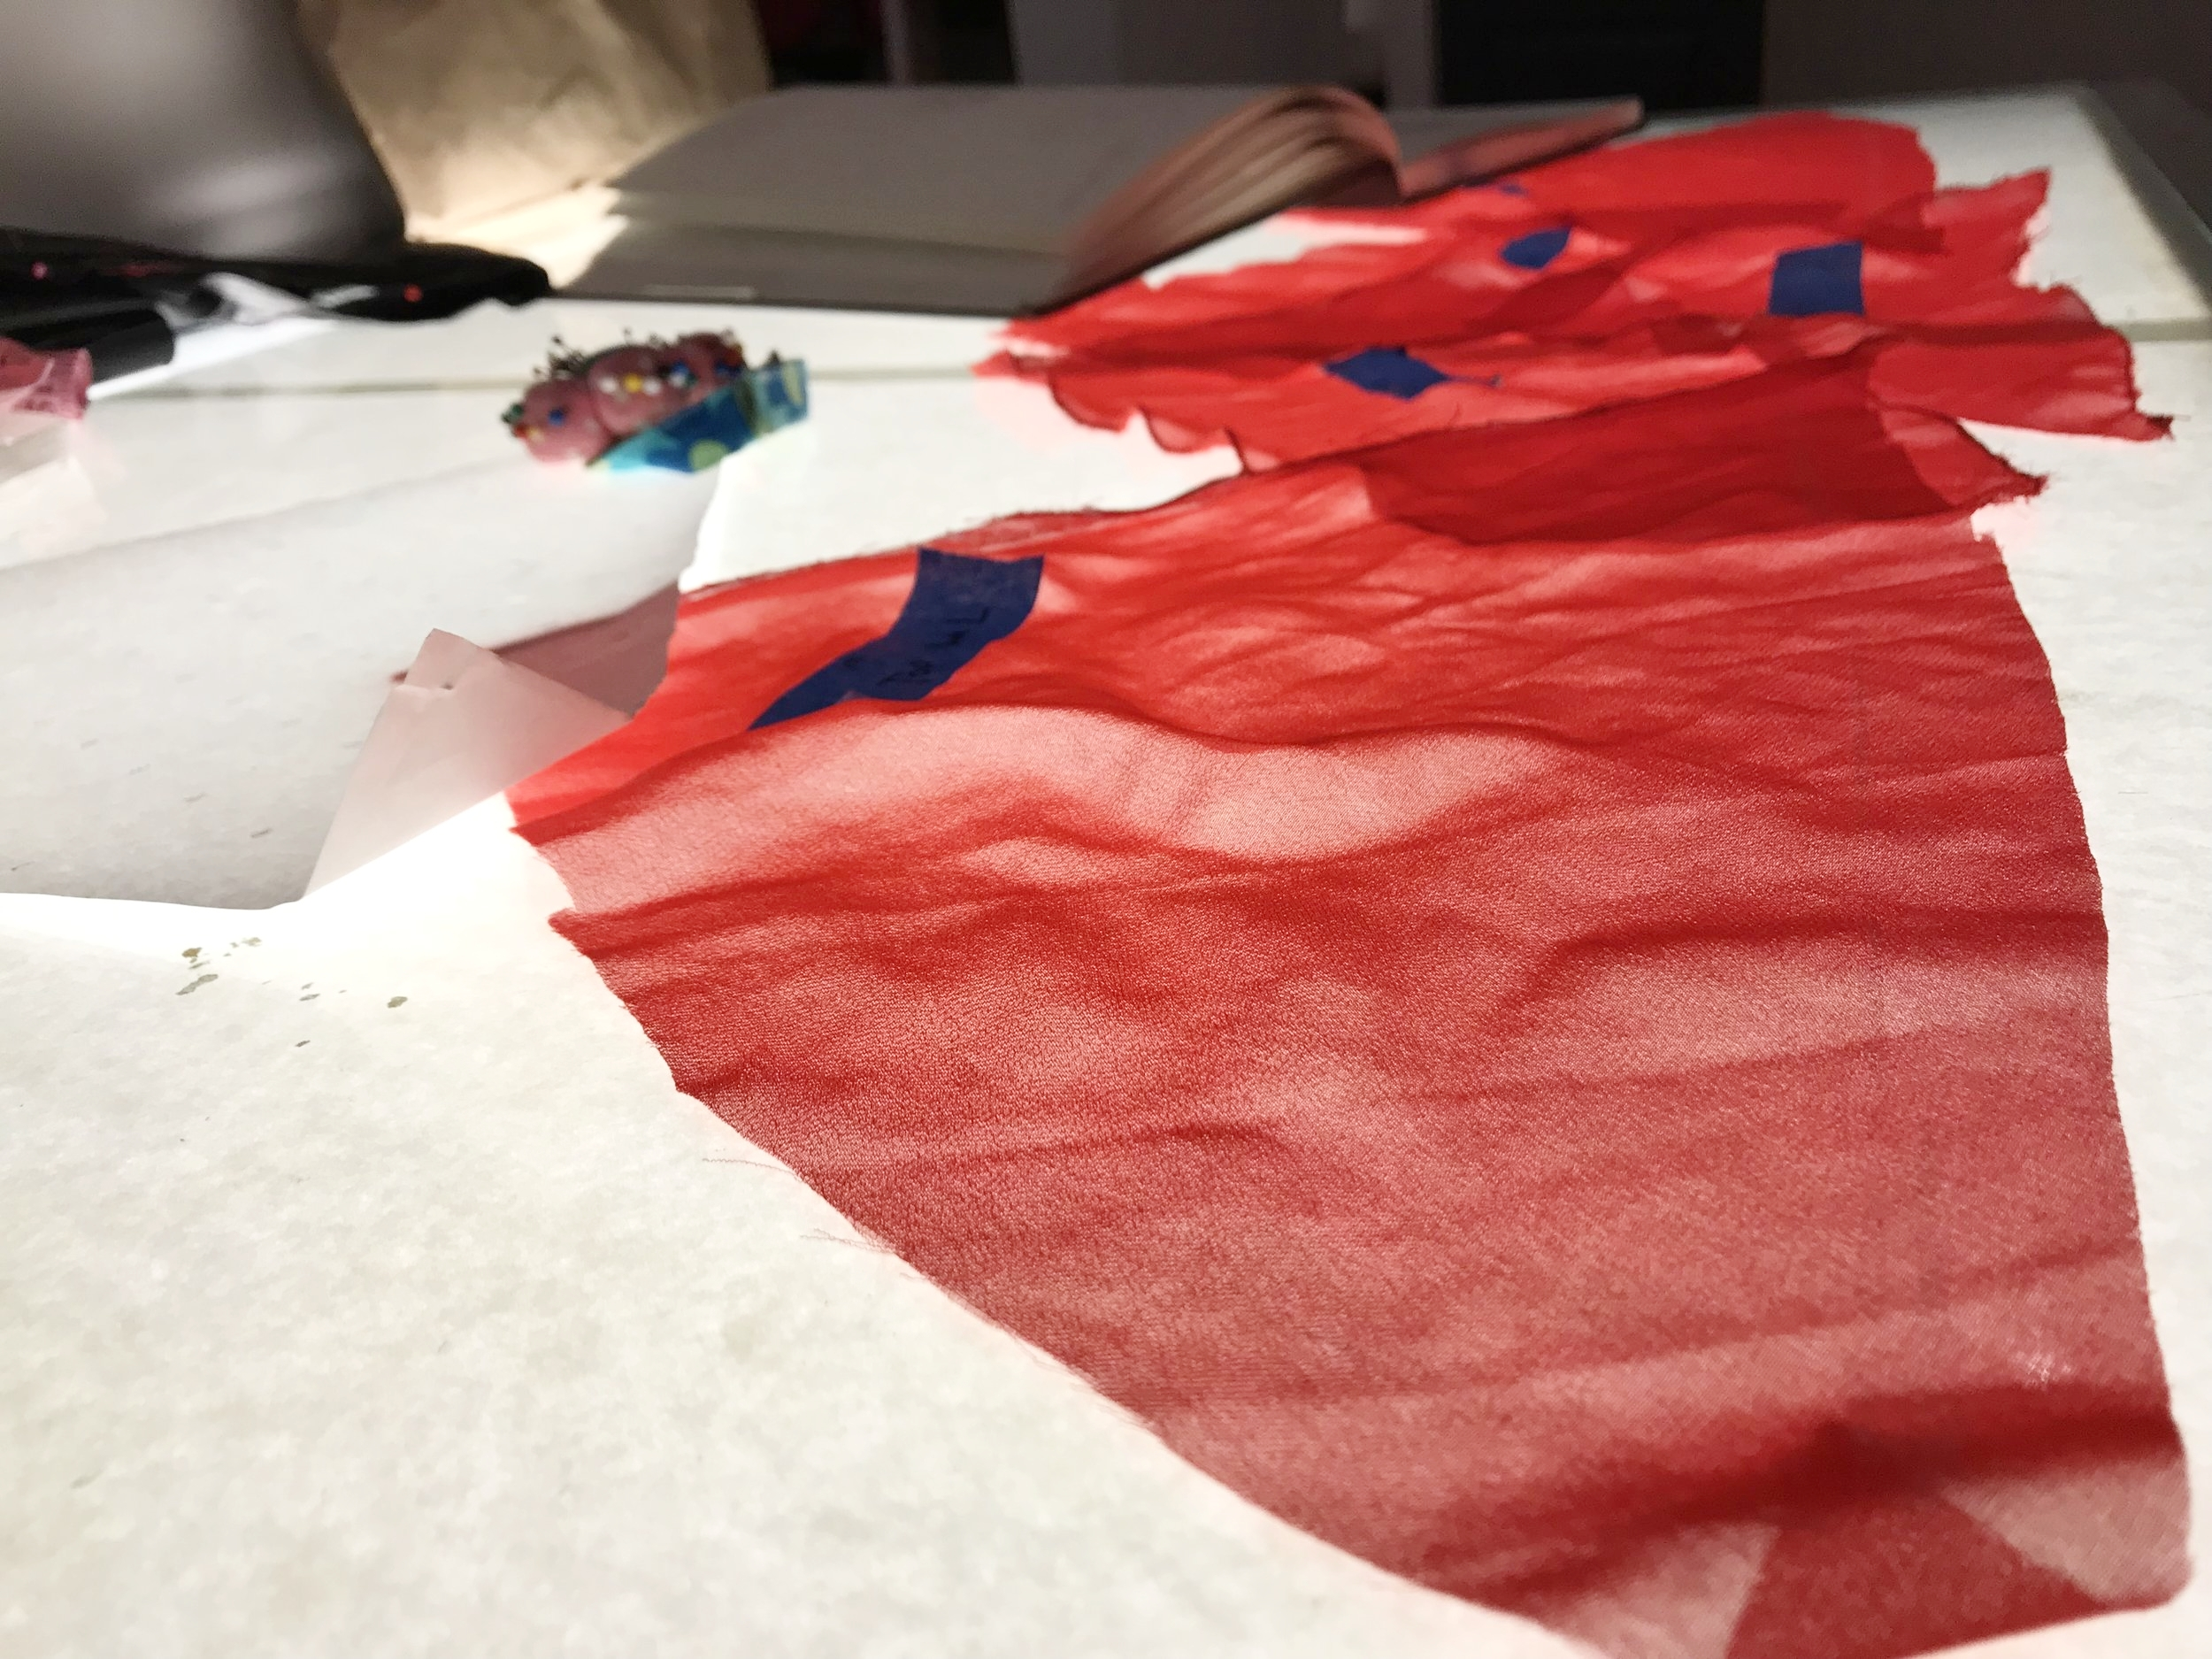 Patterns for a red sheer dress, one of the garments in Hidalgo's upcoming collection.